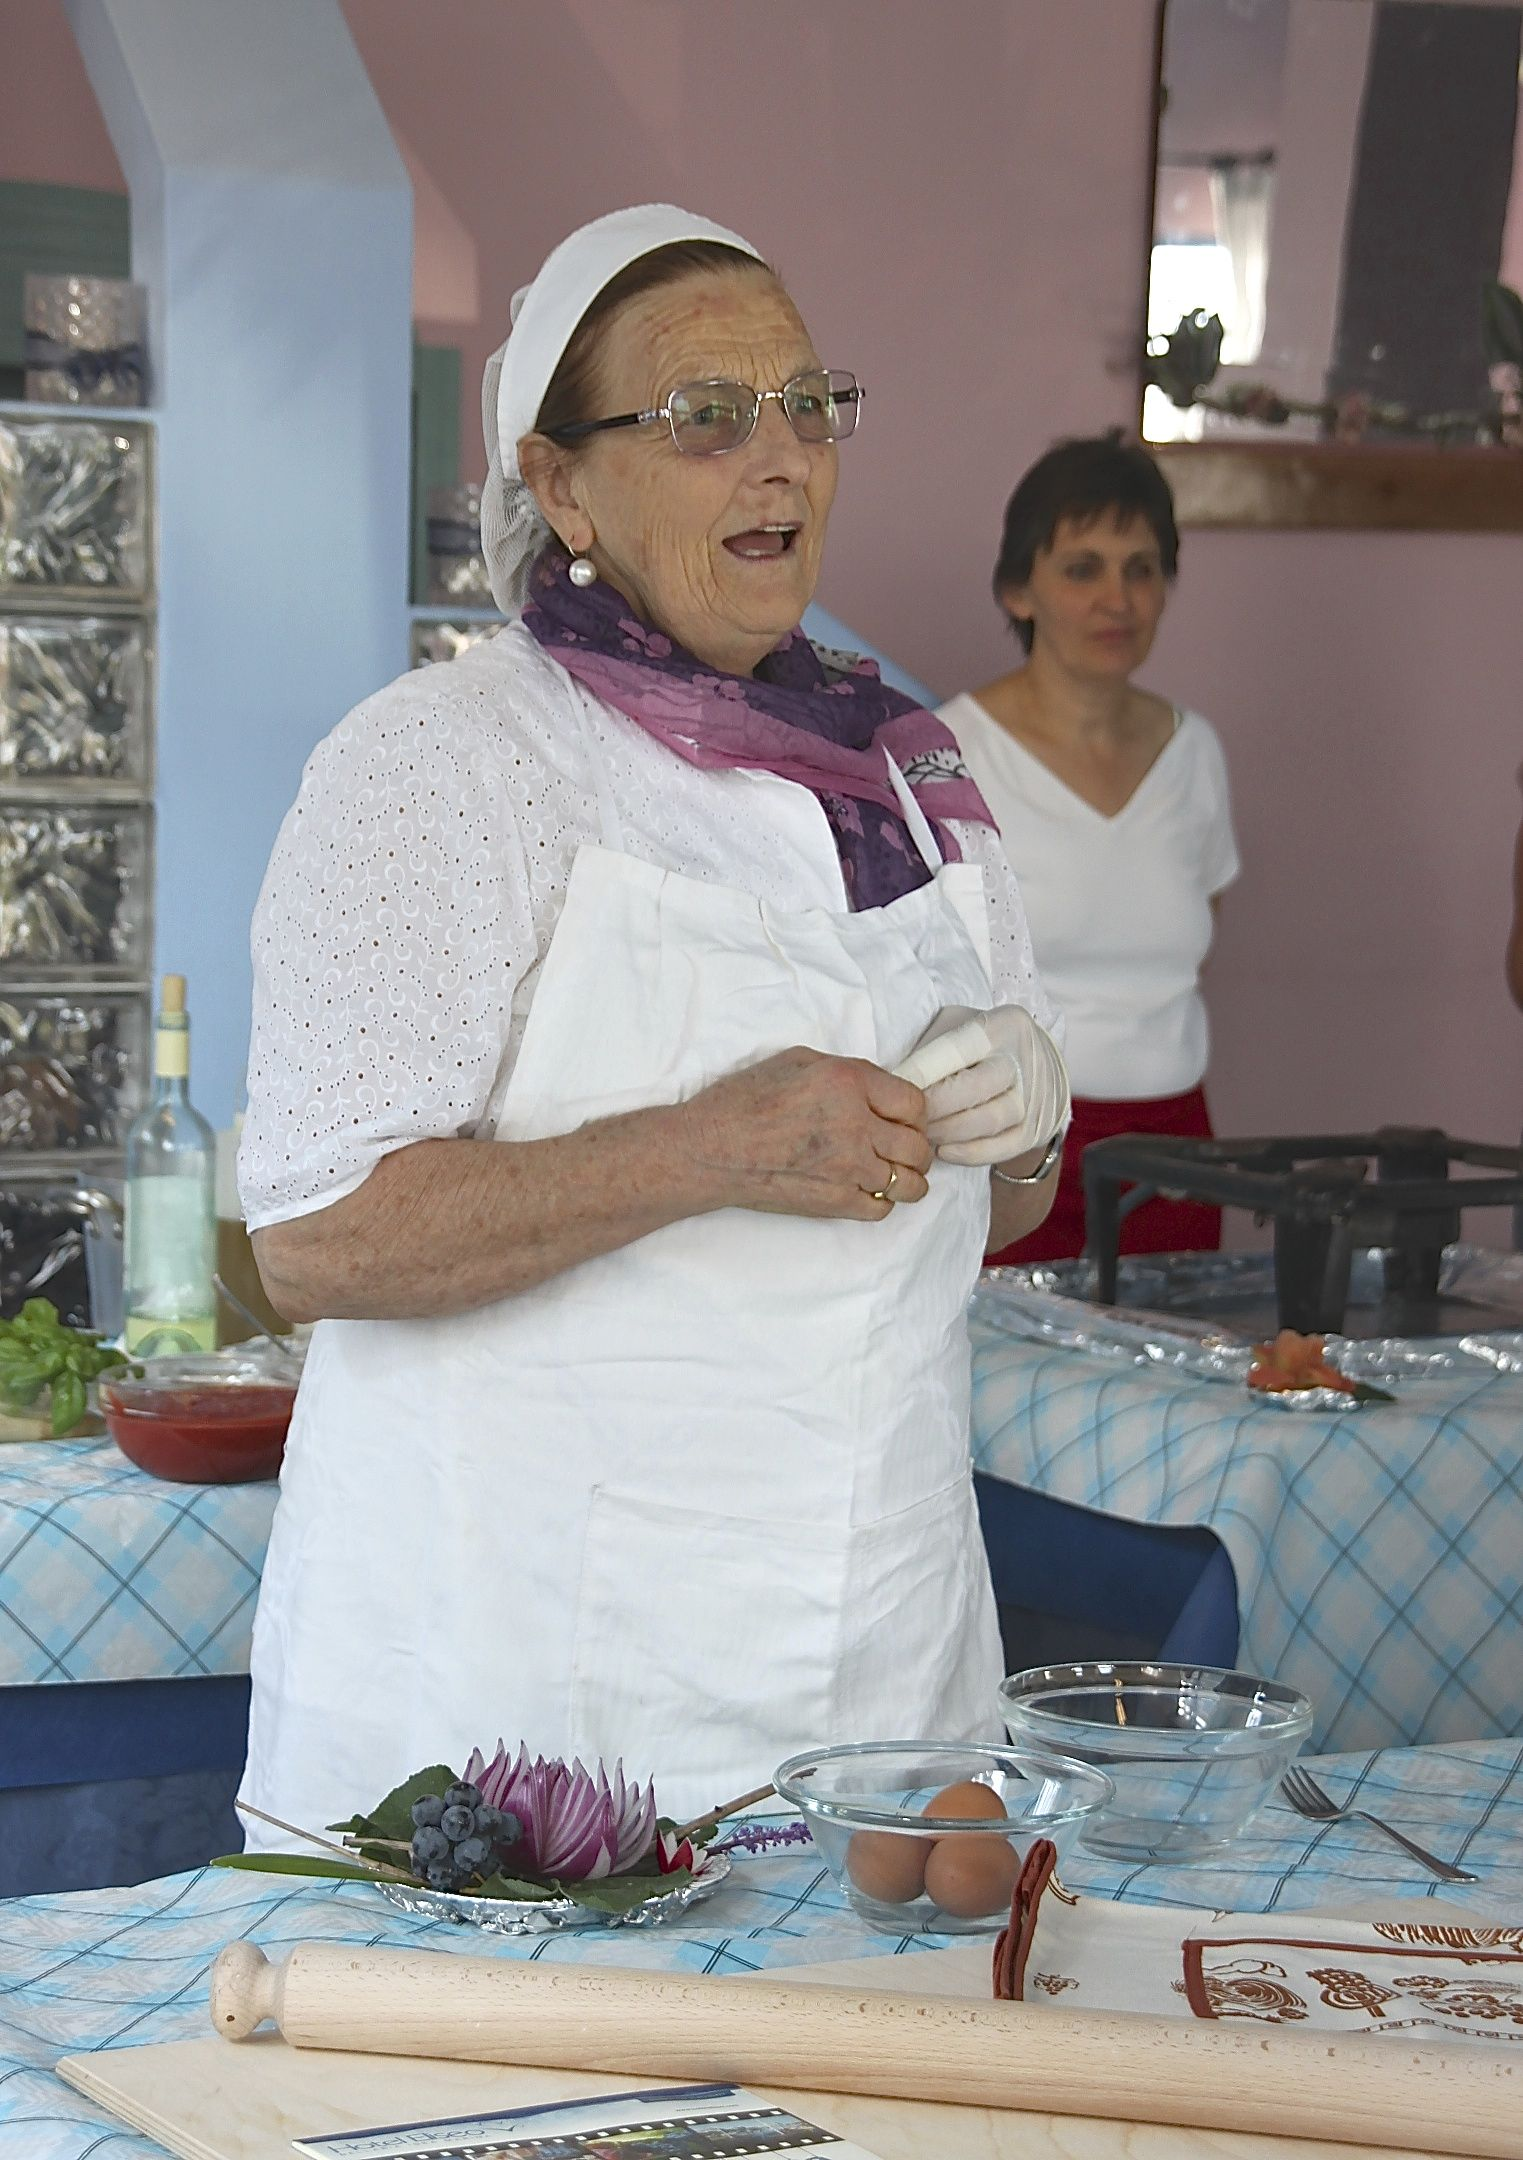 Learn how to cook Romagnolo-style with Nonna Violante